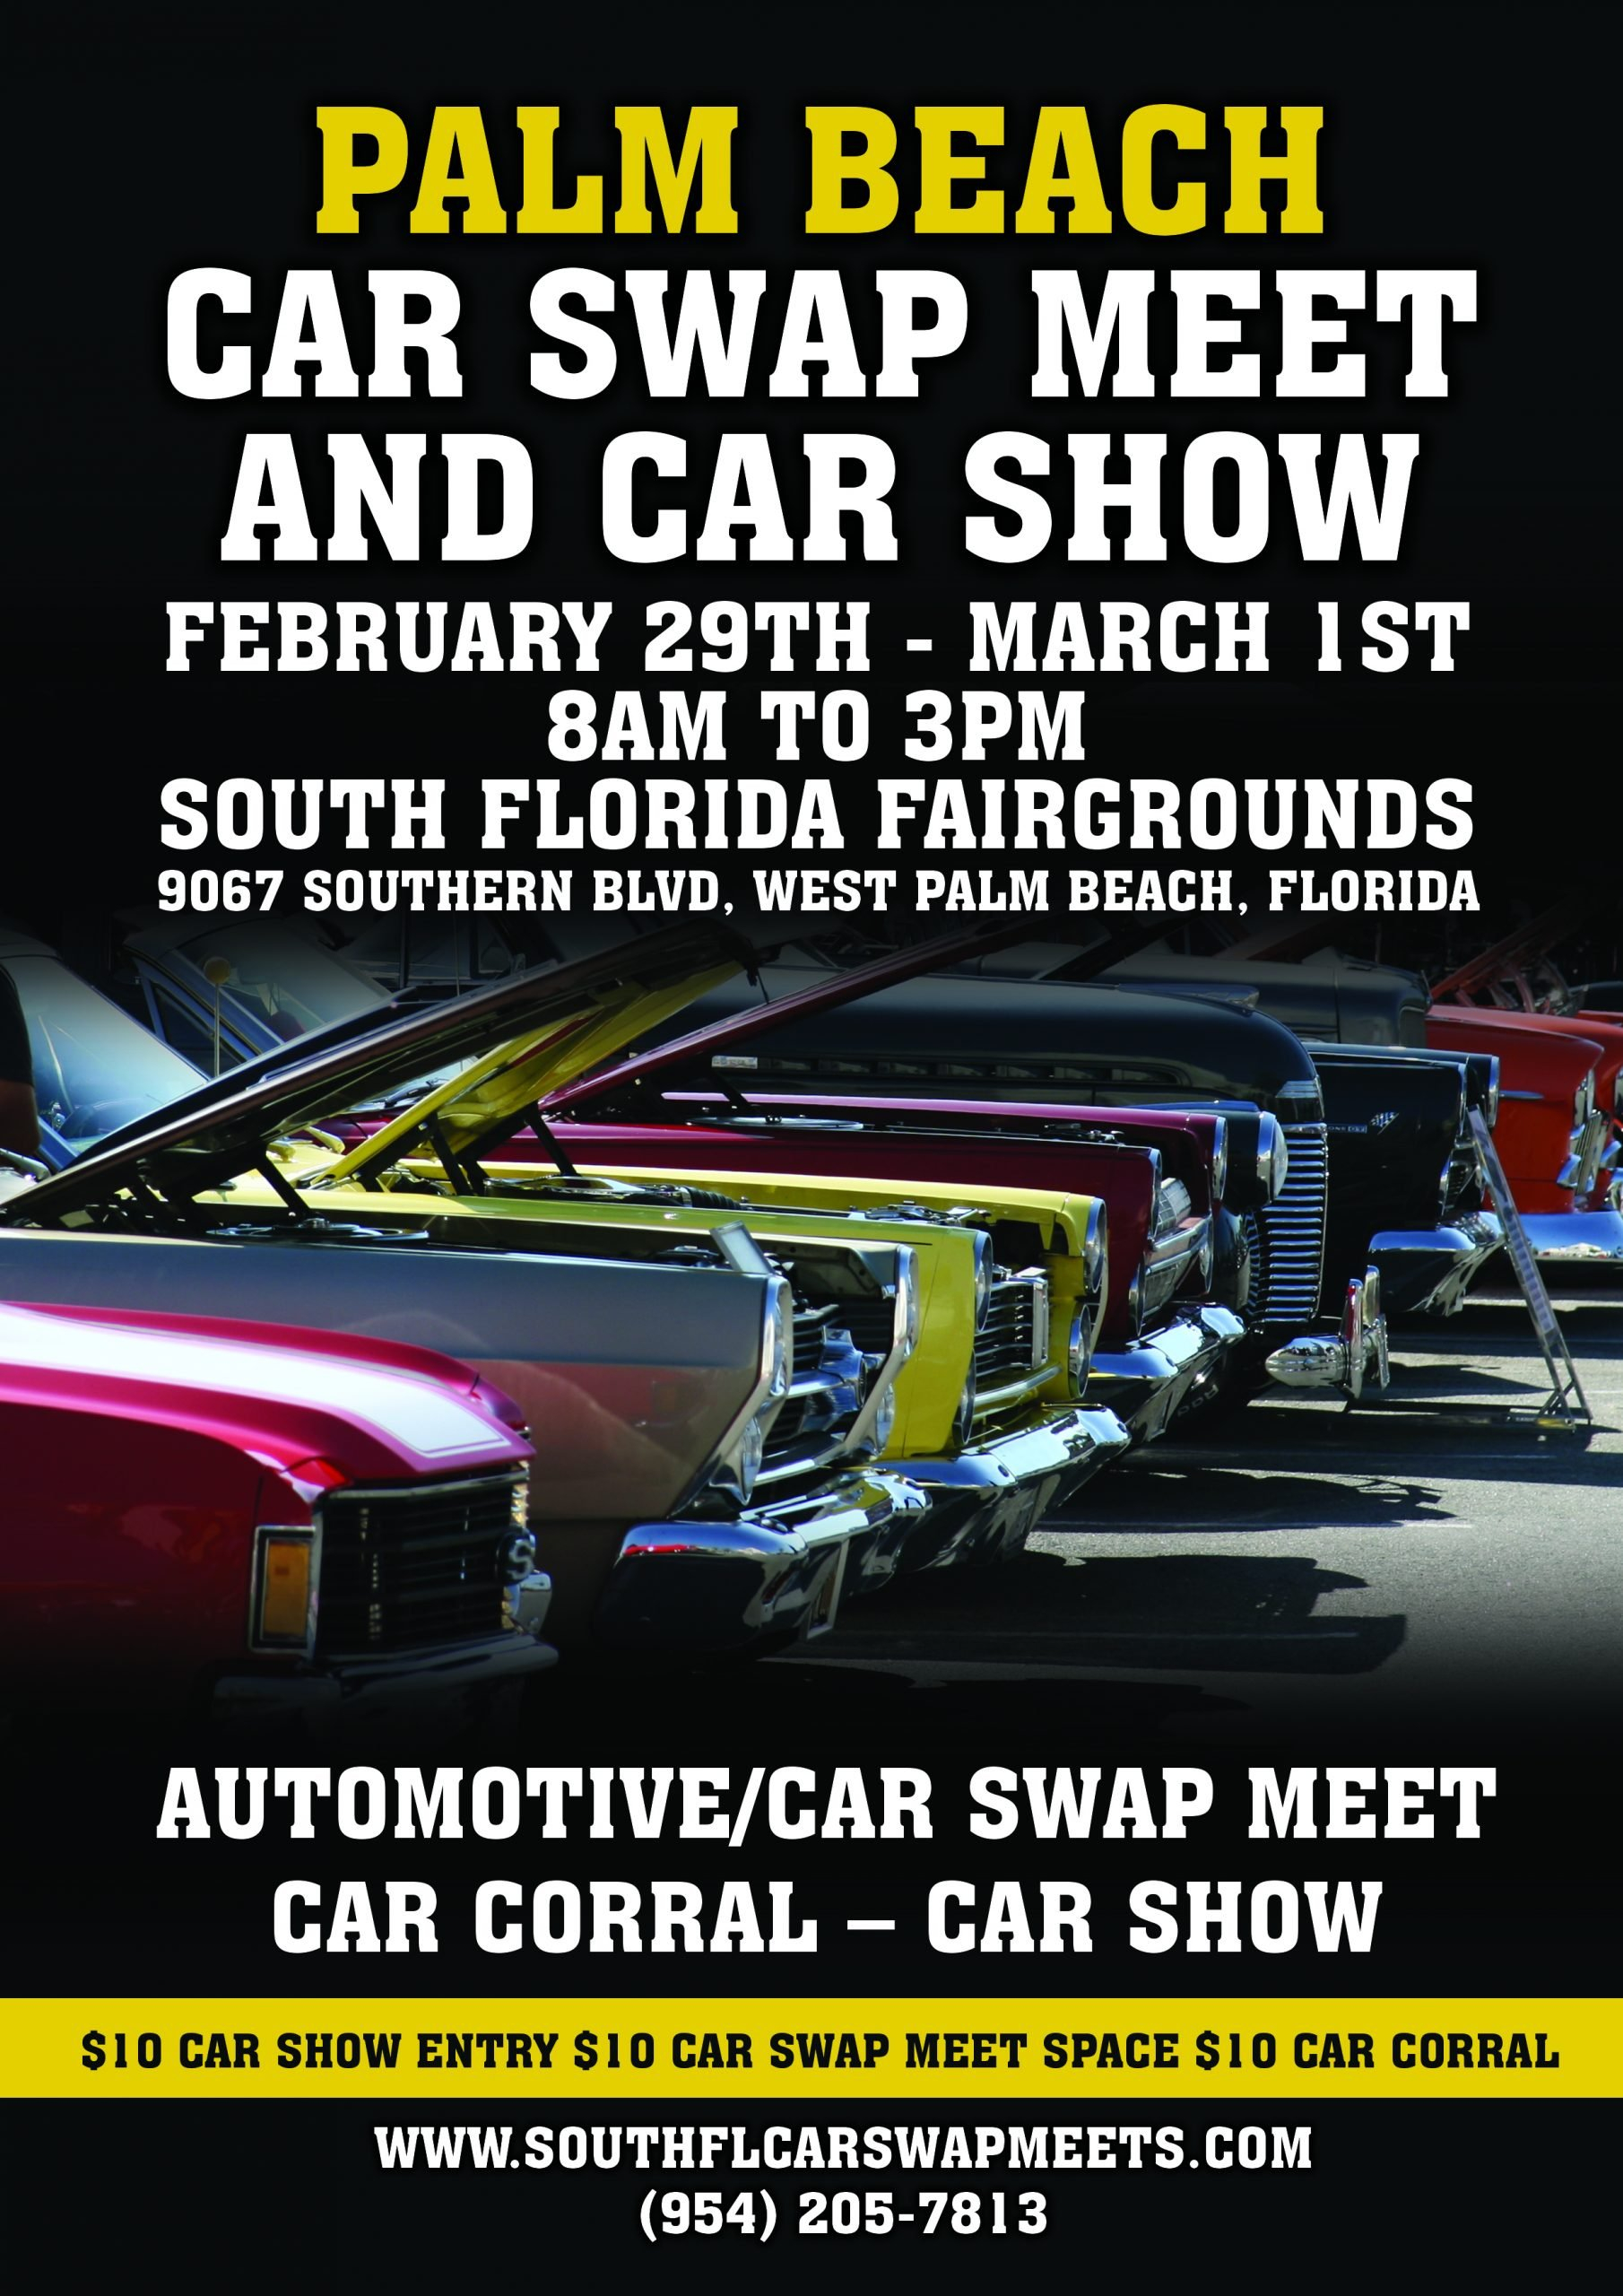 Palm Beach Automotive/Car Swap Meet And Car Show Within South Florida Fairgrounds Event Schedule February 2020